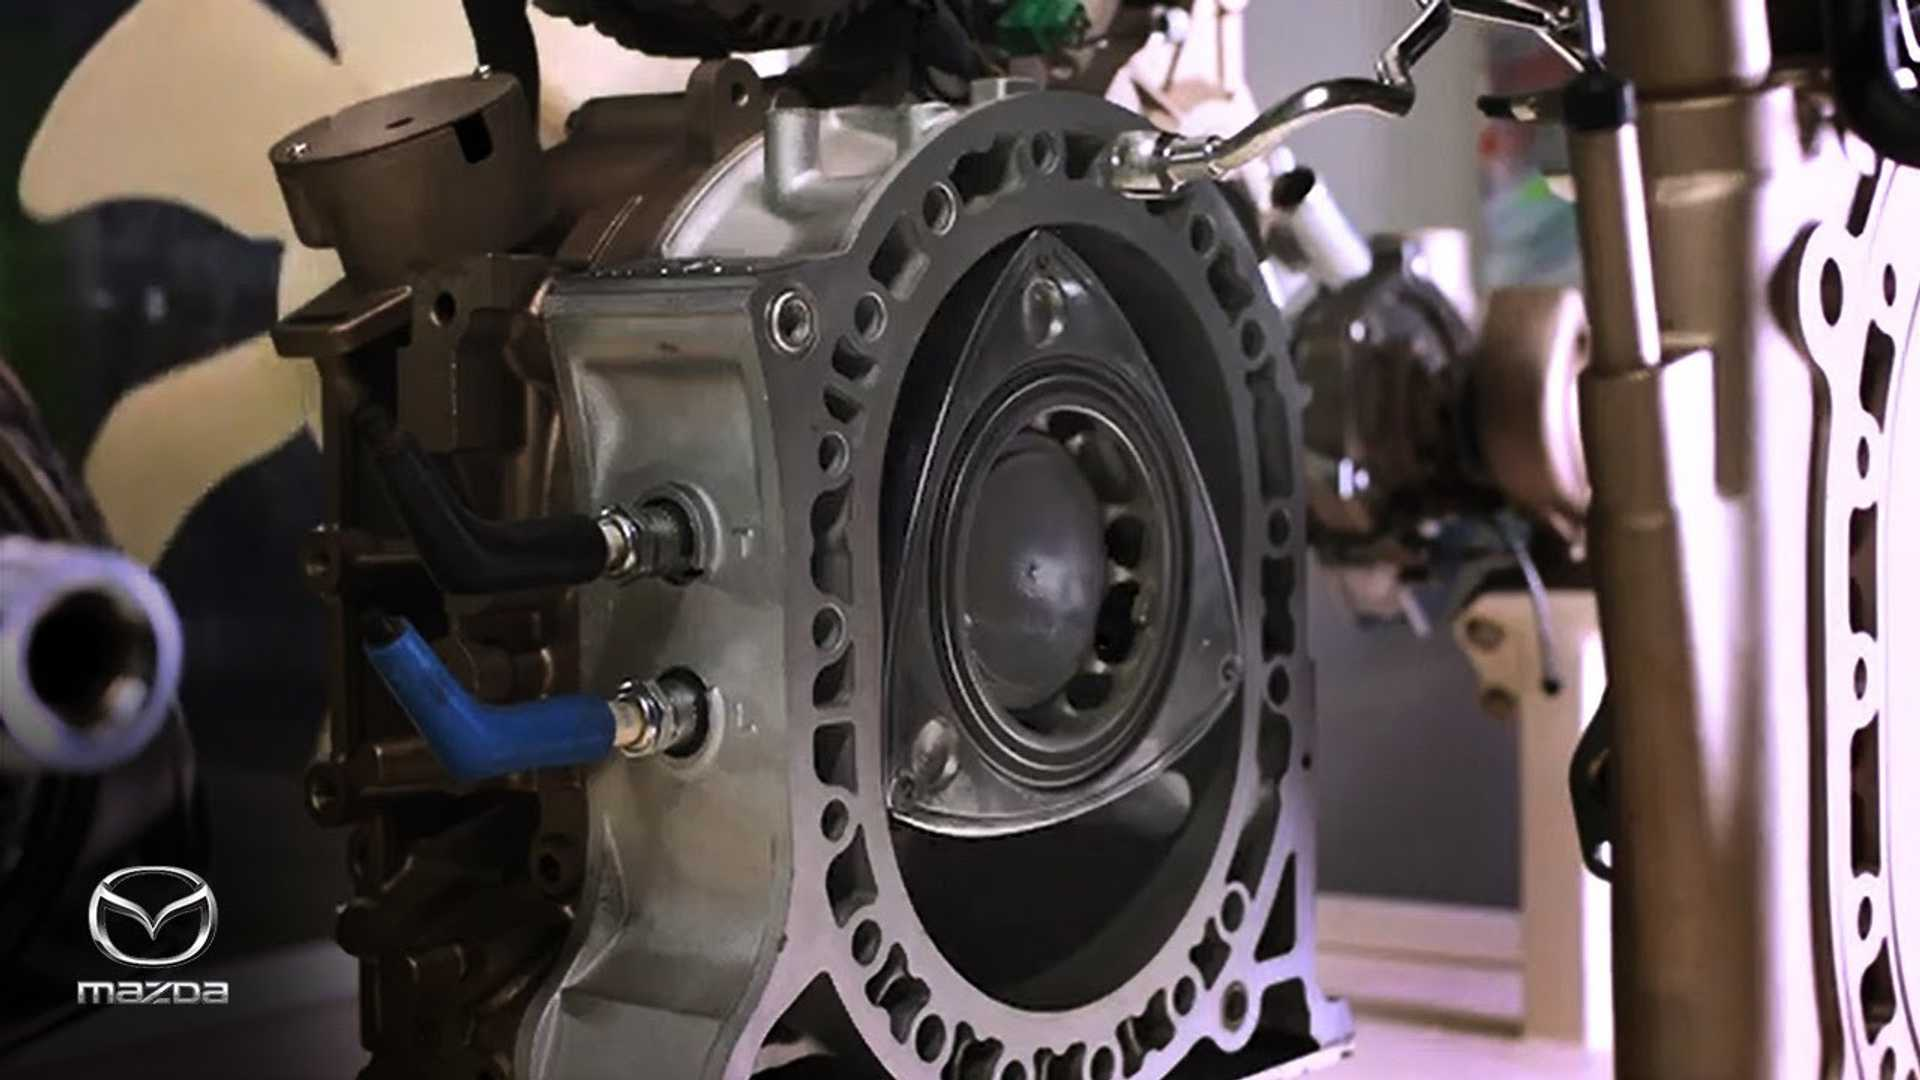 Mazda video reconfirms the rotary engine is coming back